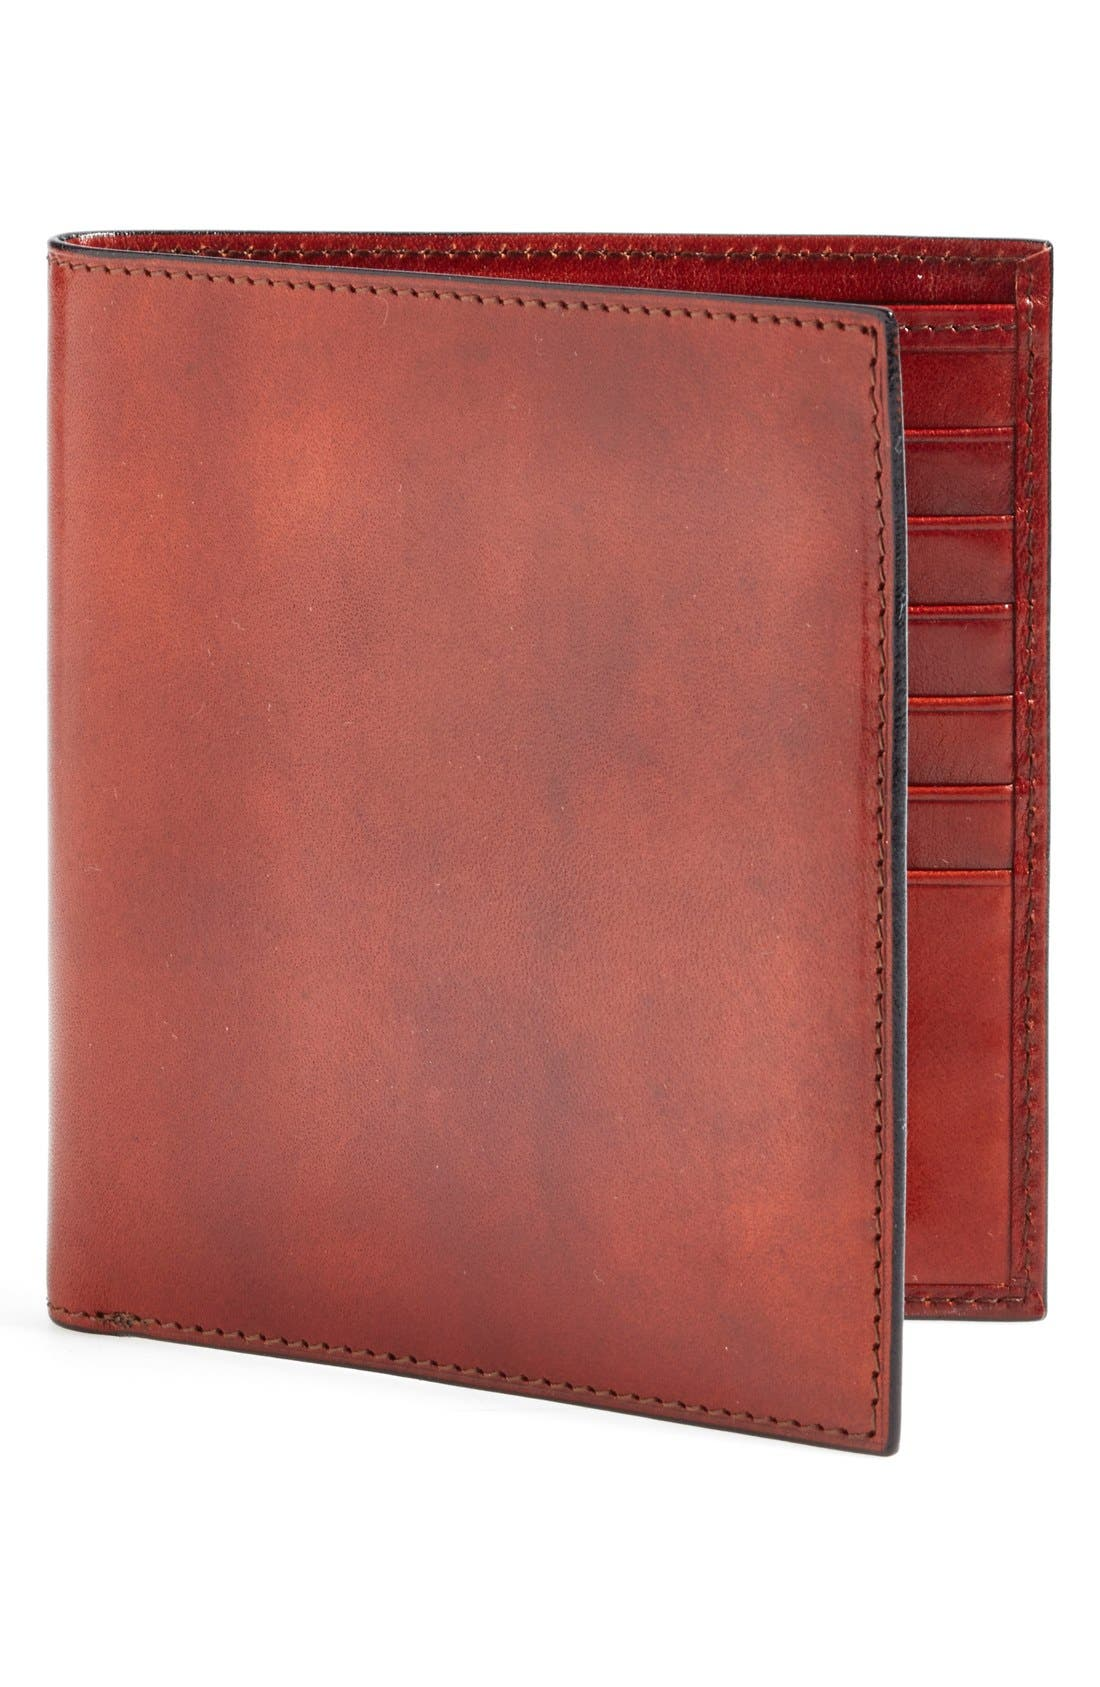 Main Image - Bosca 'Old Leather' Credit Wallet